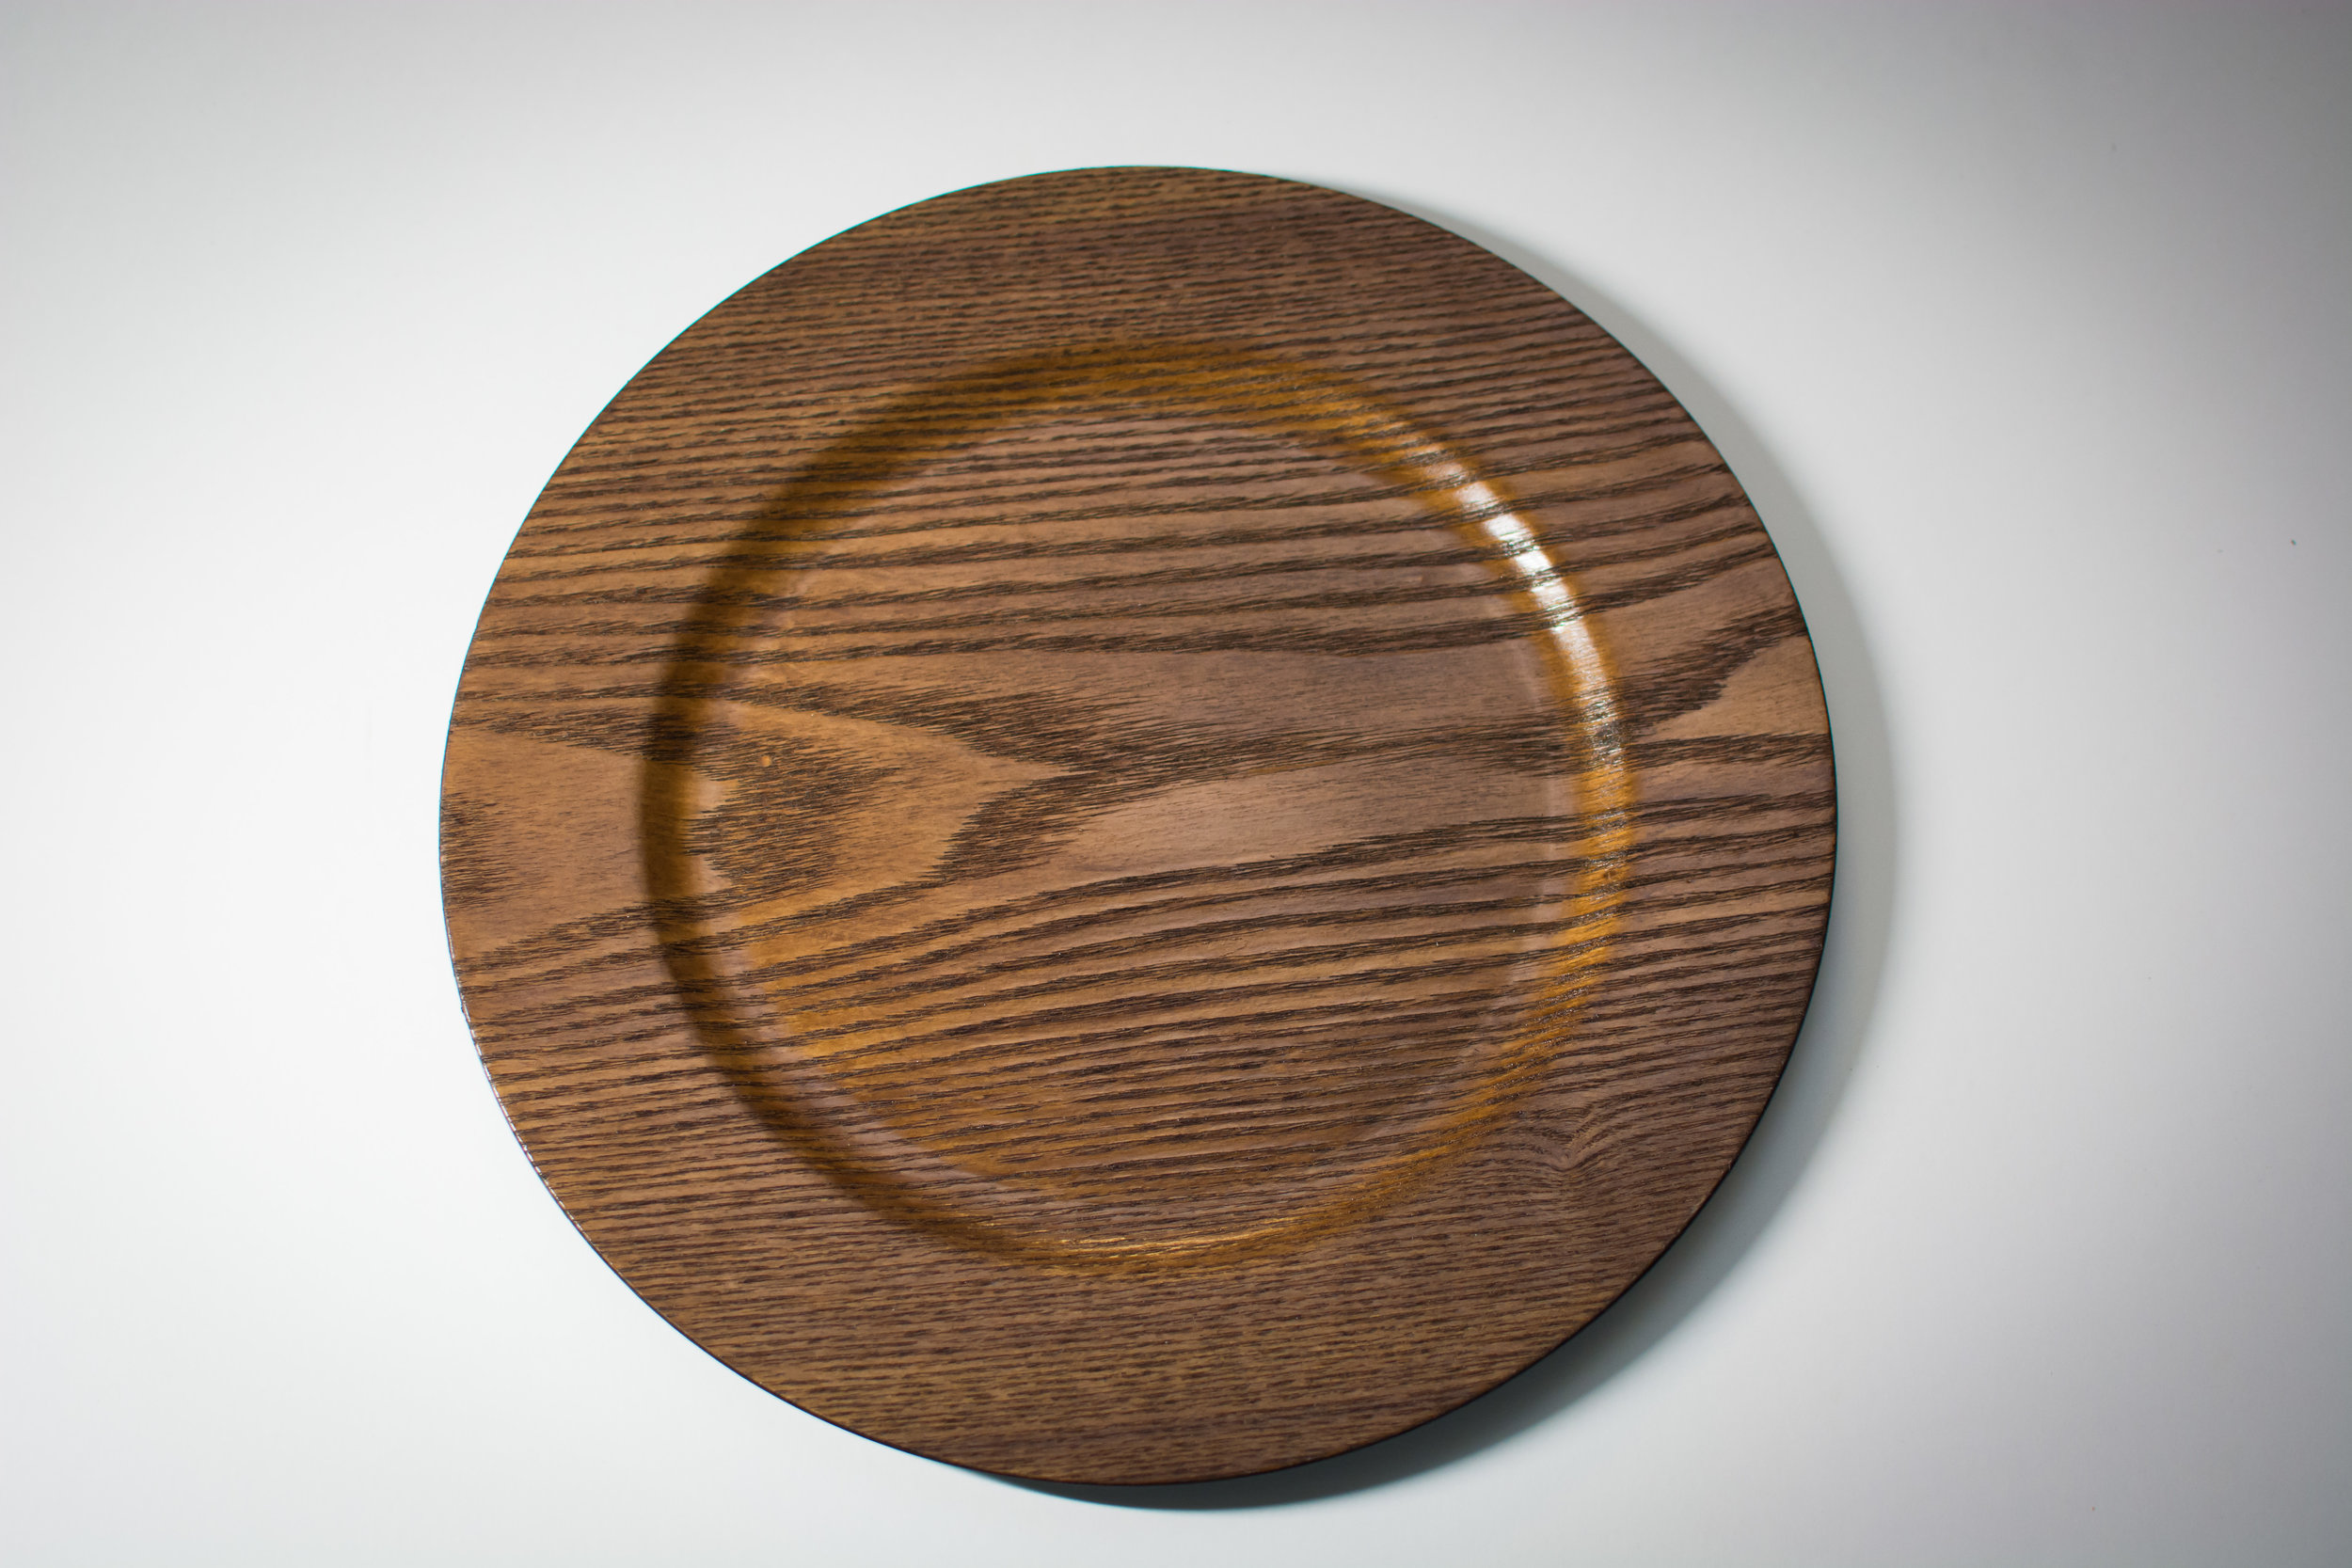 Walnut charger plate   Material: acrylic  $2.00 Per Plate  Inquire about quantity and availability